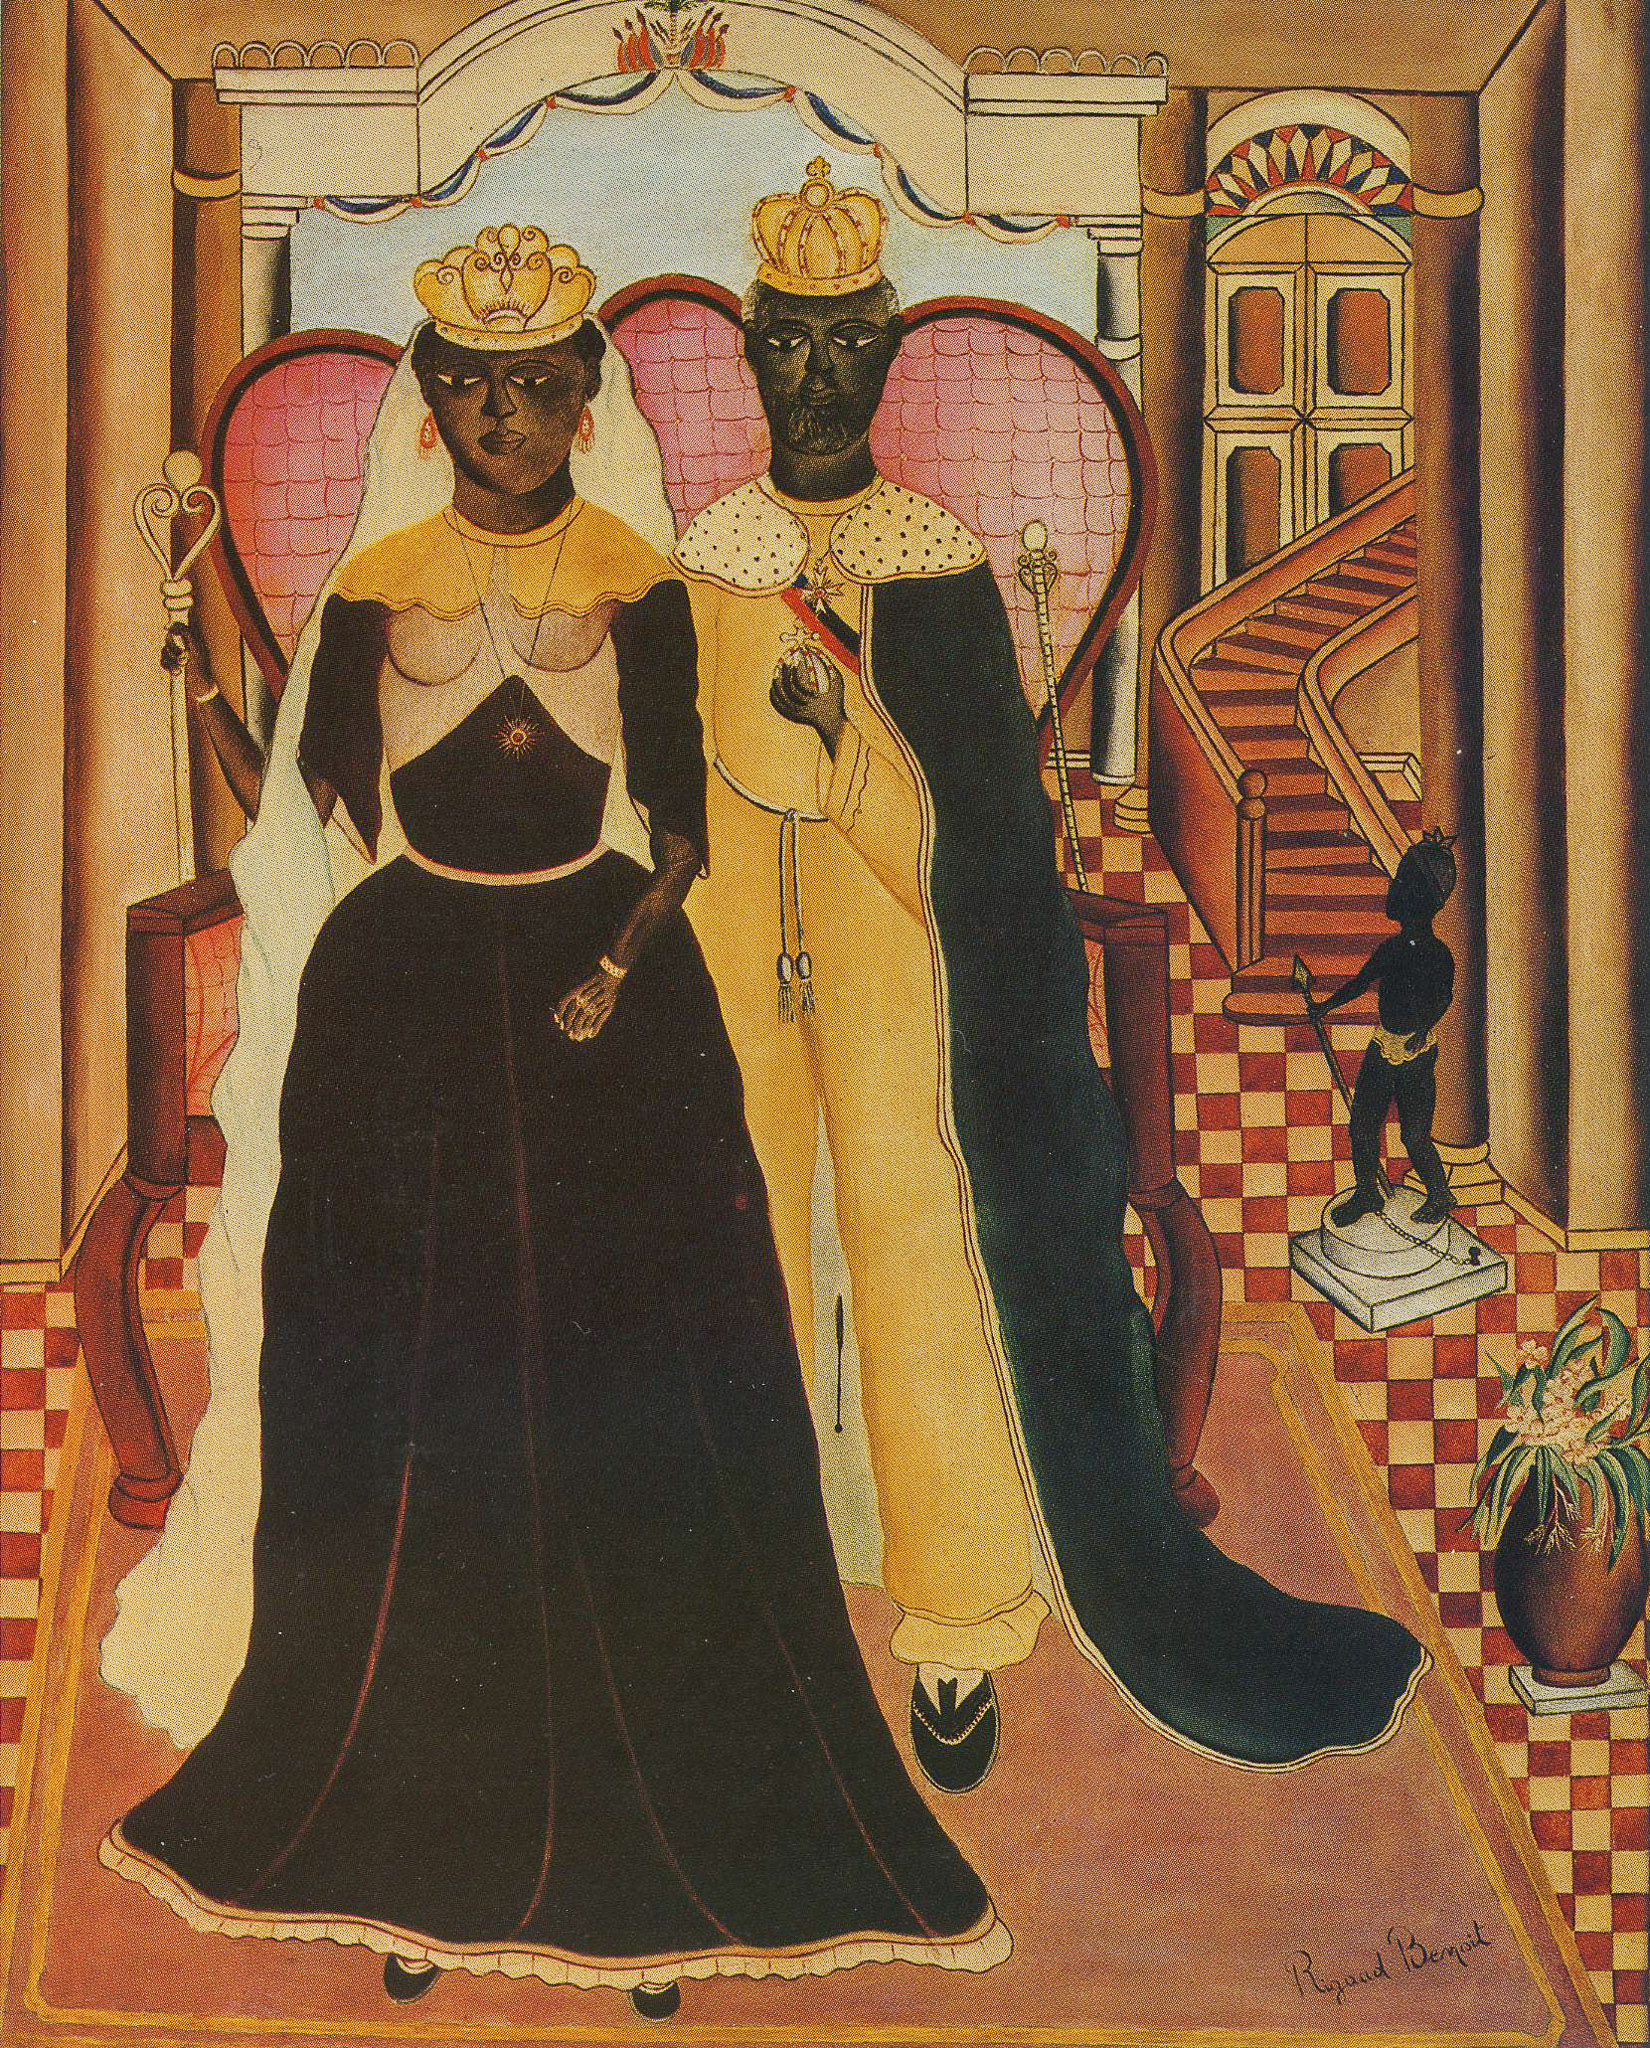 King and Queen, 1947